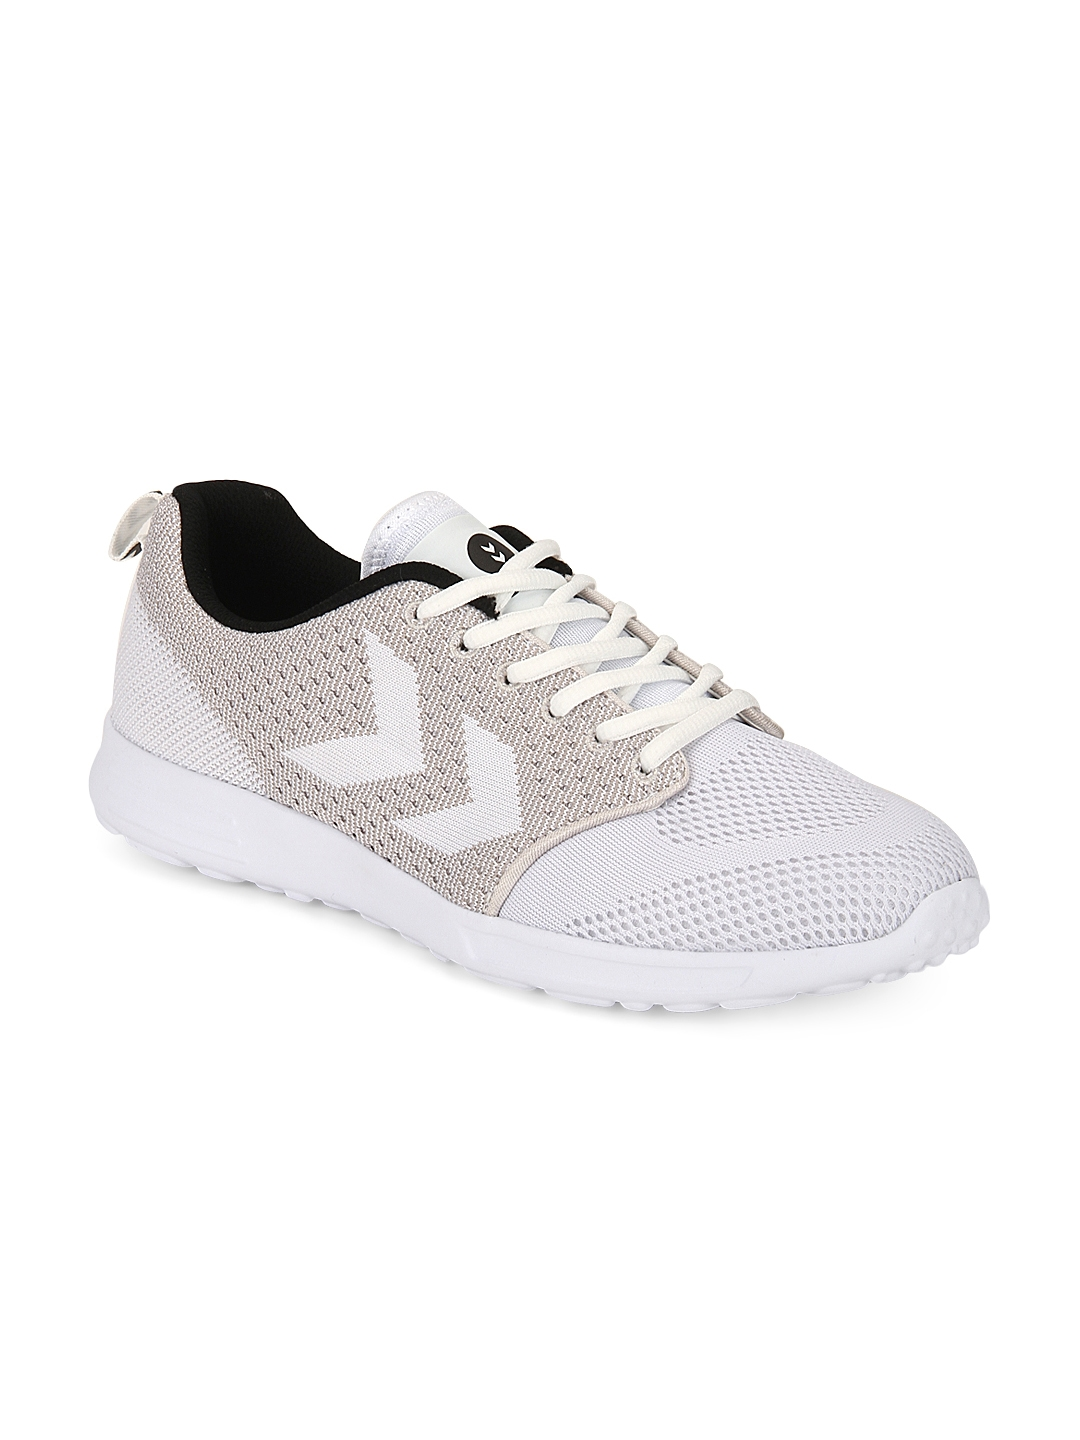 Shoes Zeroknit For Buy White Unisex Ii Sports Hummel wtFqYfxqg